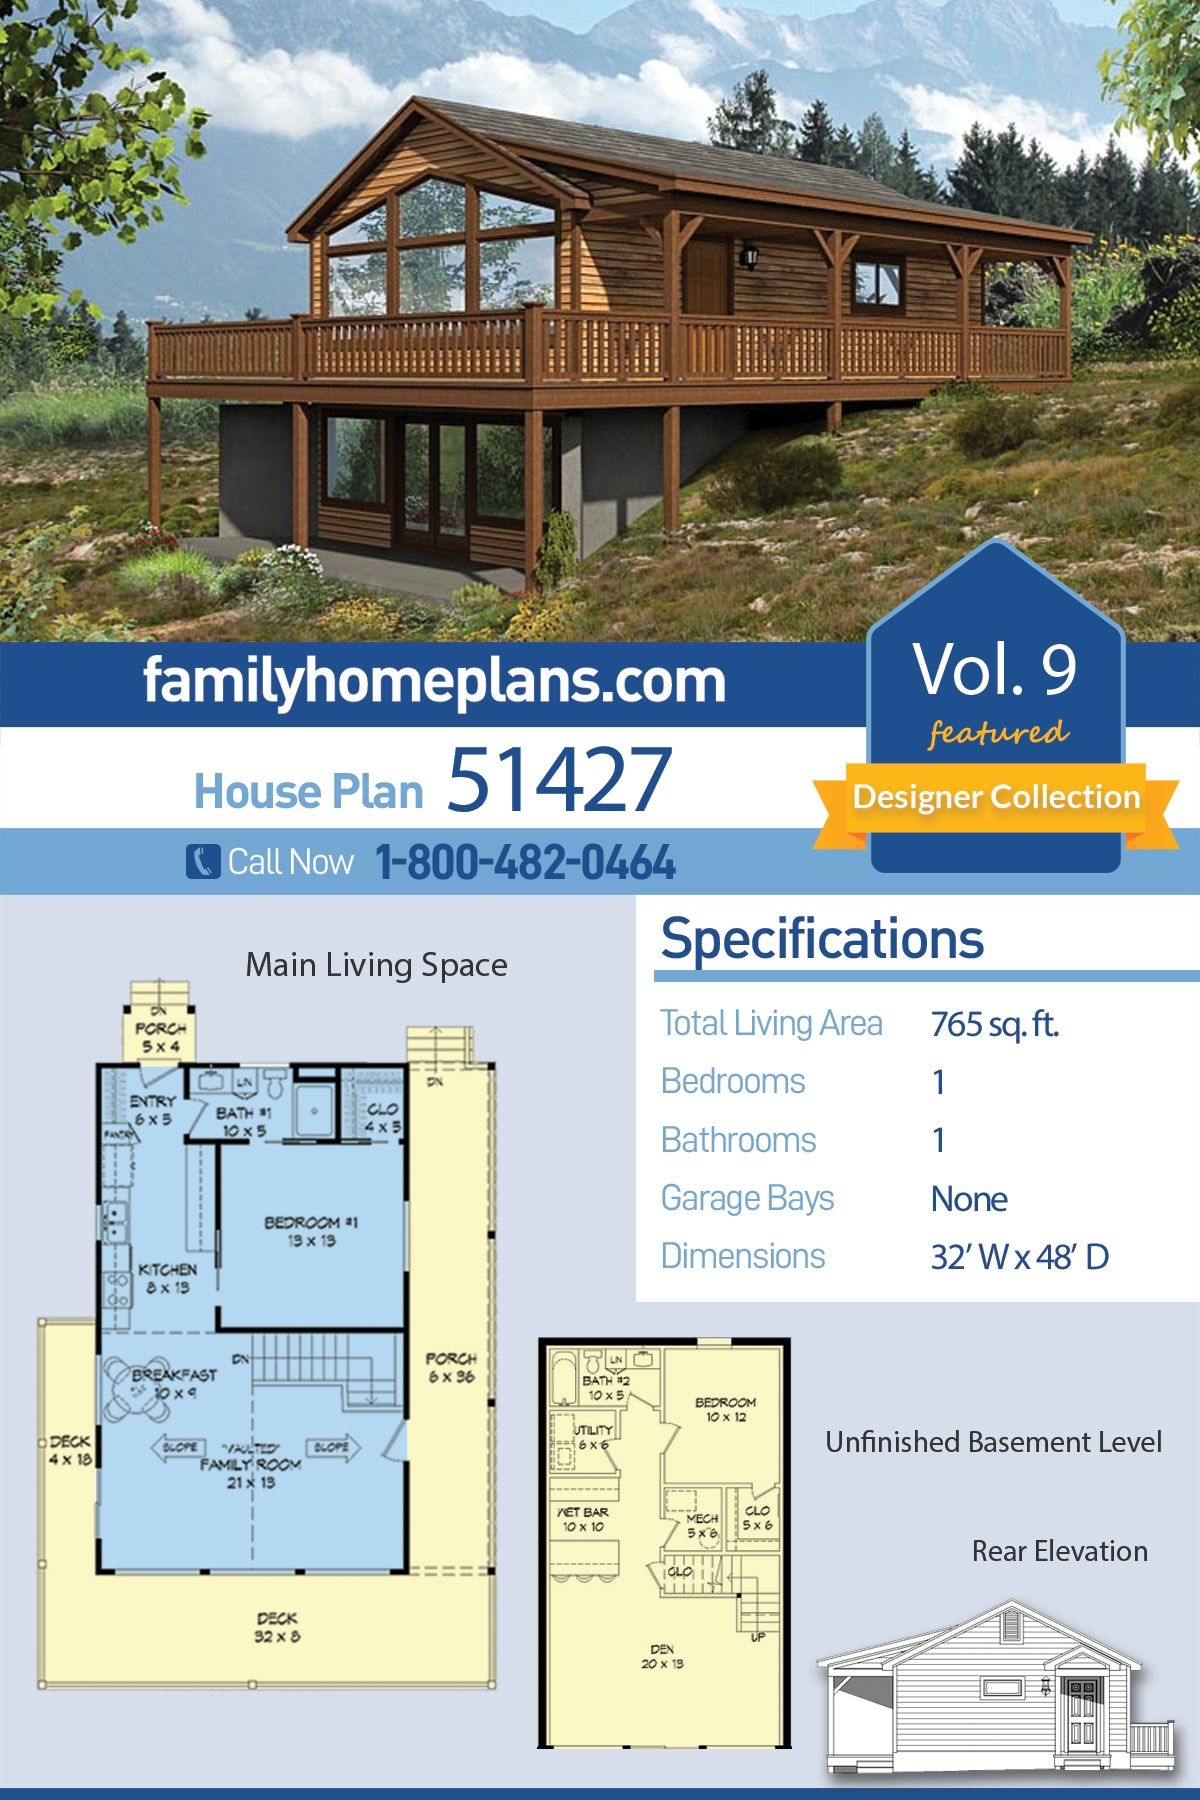 Country Style House Plan 51427 With 1 Bed 1 Bath Country Style House Plans Lake House Plans House Plans